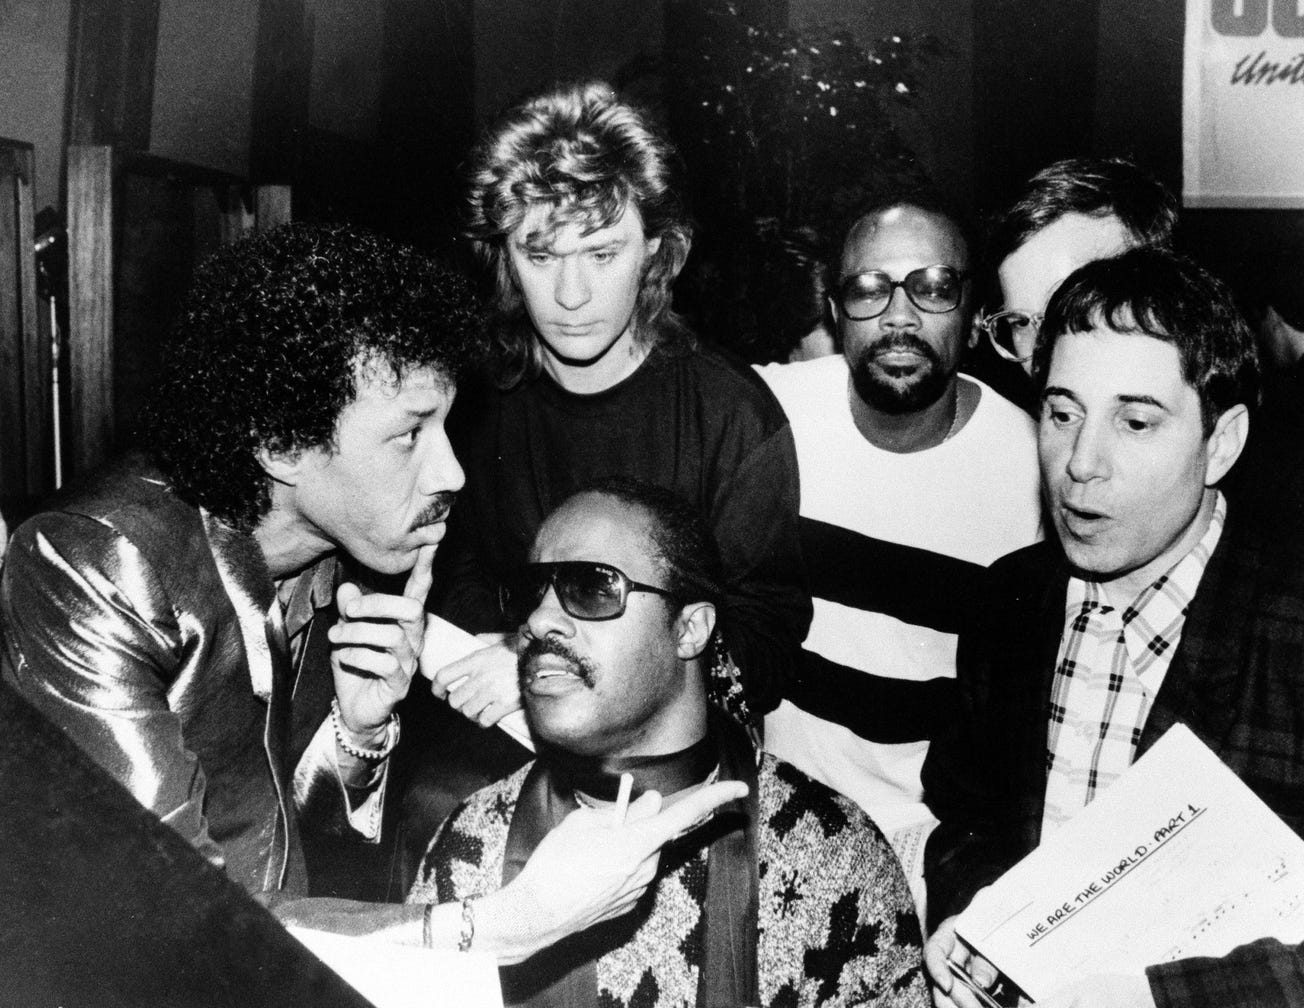 """This 1985 black and white file photo shows Lionel Richie, clockwise from left, Daryl Hall, Quincy Jones, Paul Simon and Stevie Wonder record """"We Are The World"""" by USA for Africa."""